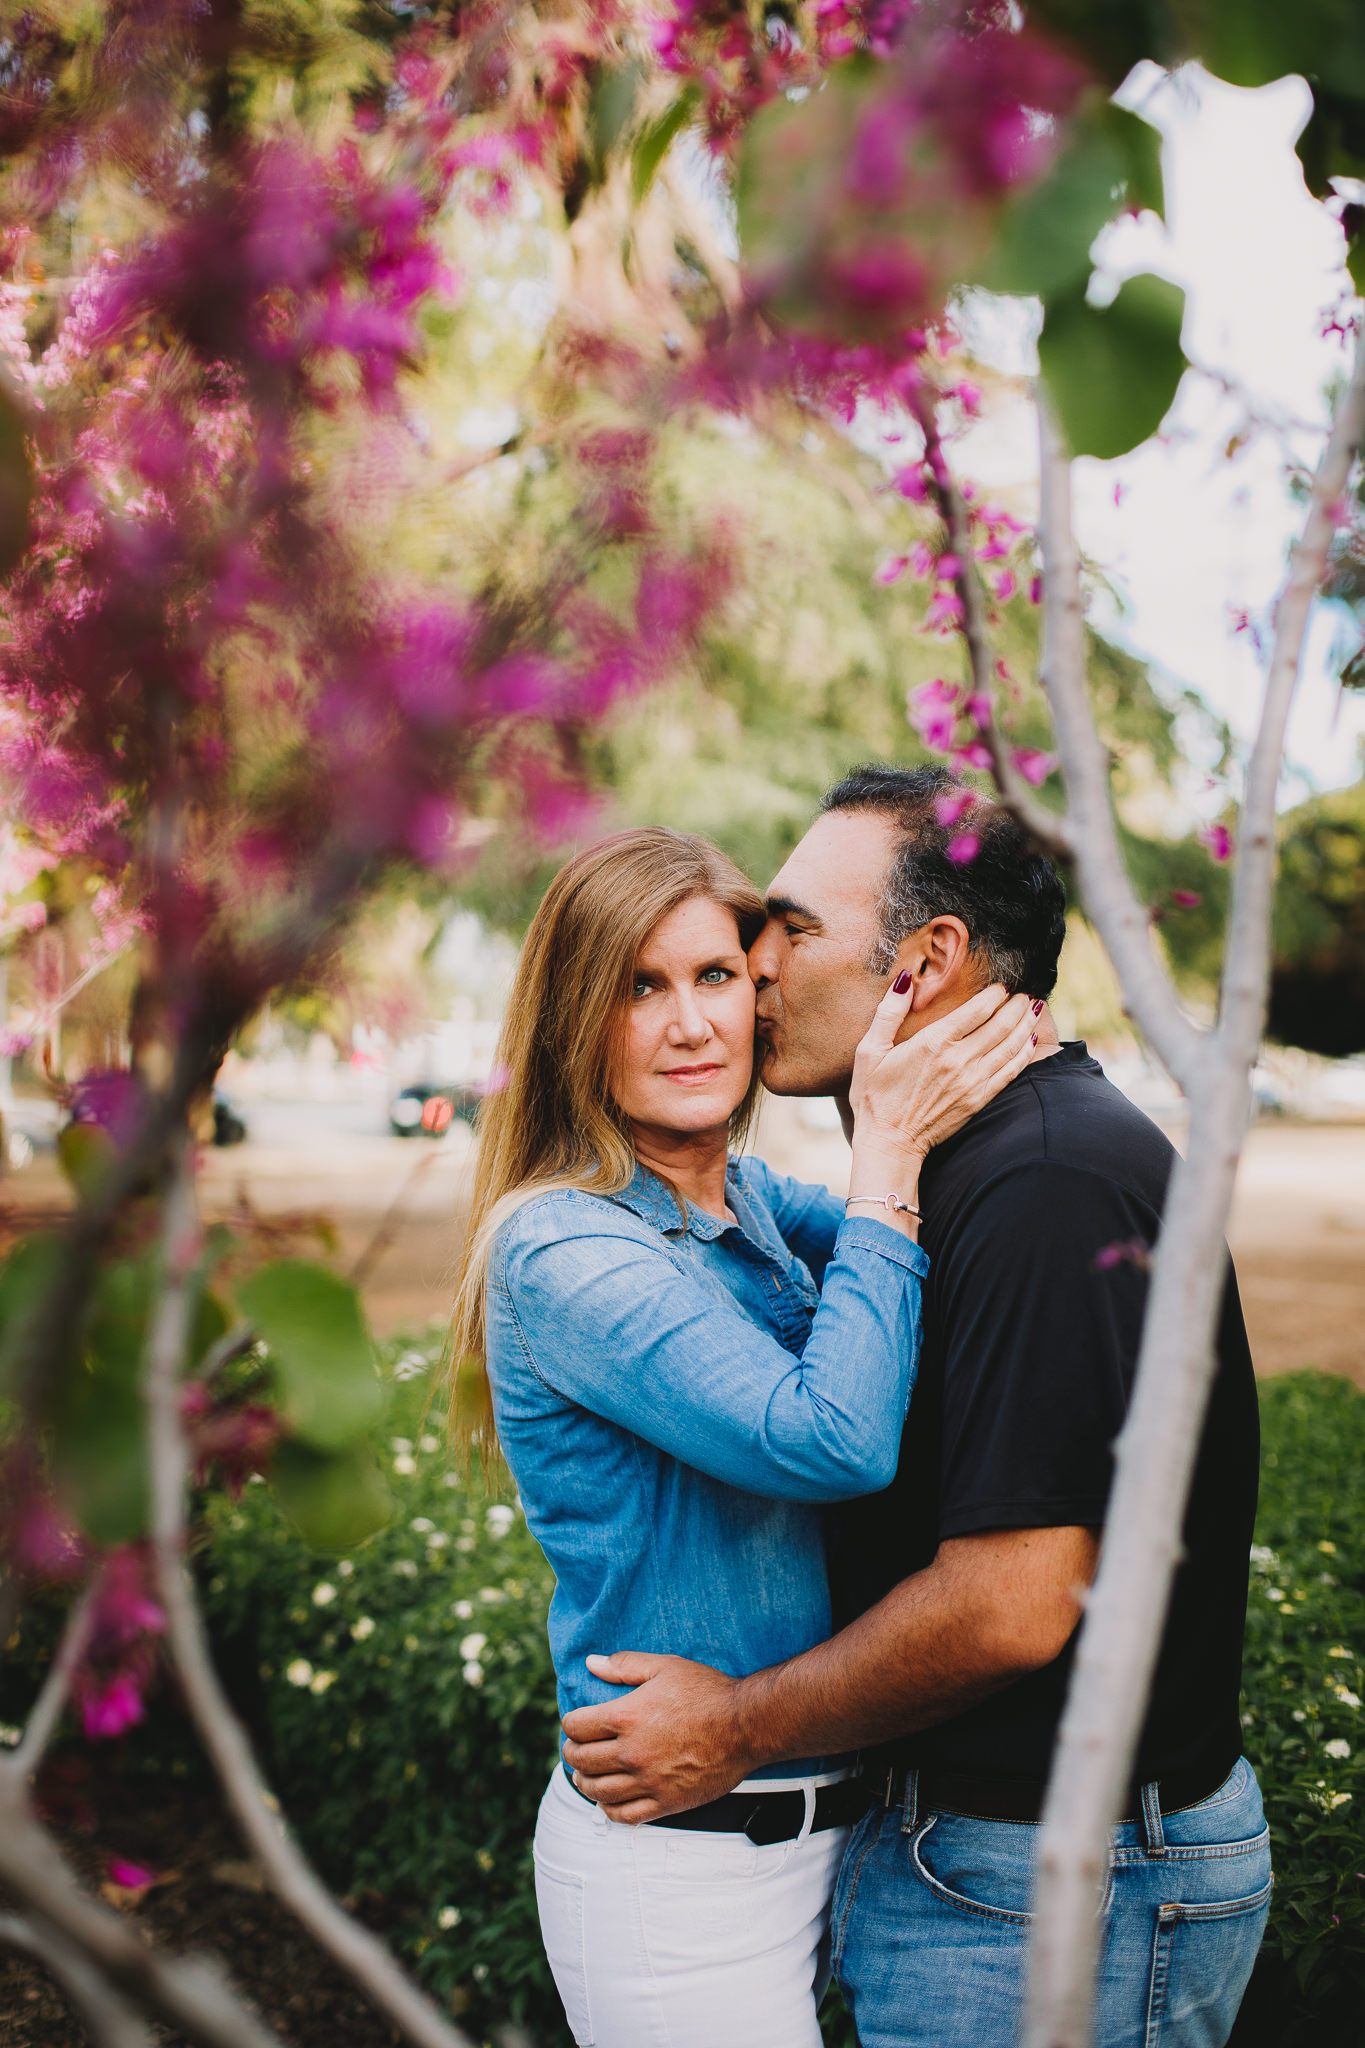 Archer Inspired Photography Los Angeles Orange County Long Beach Wedding Engagement Session Affordable Best Rated Lifestyle Documentary Photographer Robin and Ivan-14.jpg